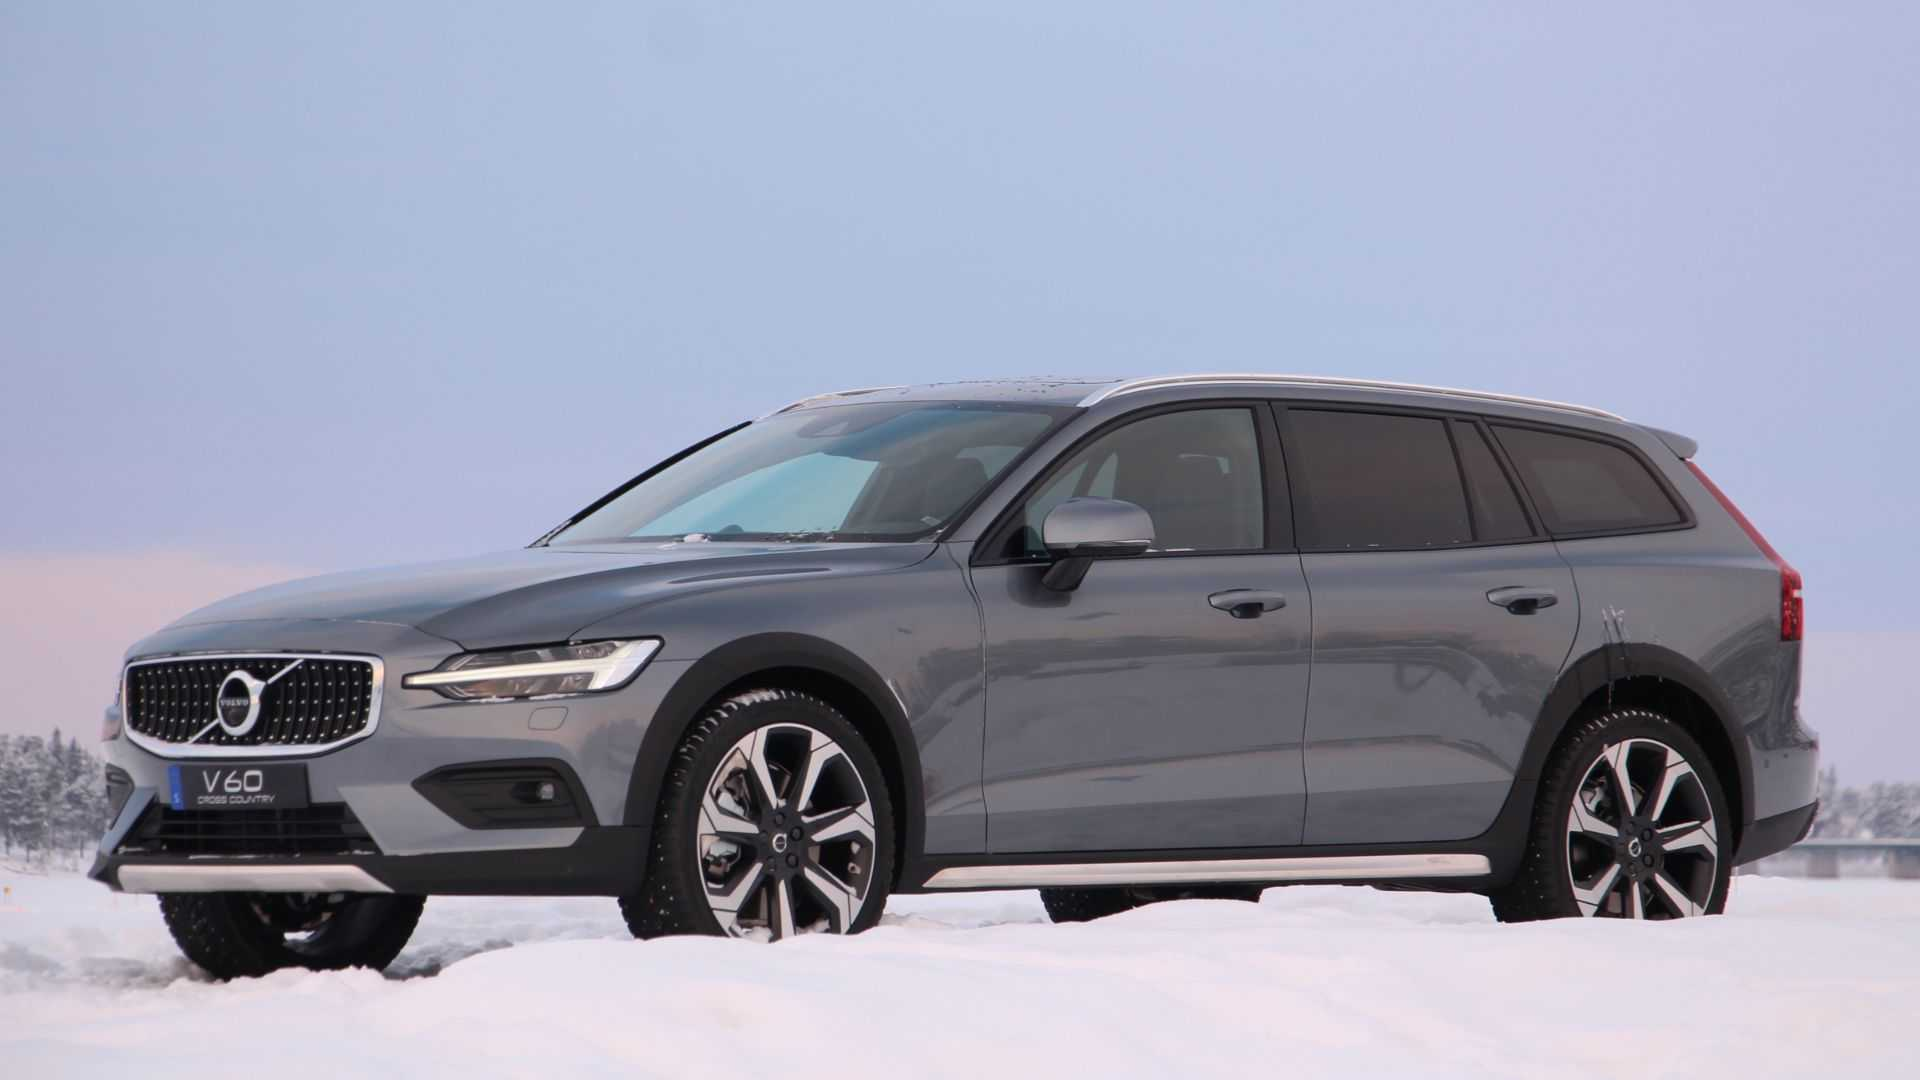 22 All New Volvo V60 Cross Country 2020 Configurations by Volvo V60 Cross Country 2020